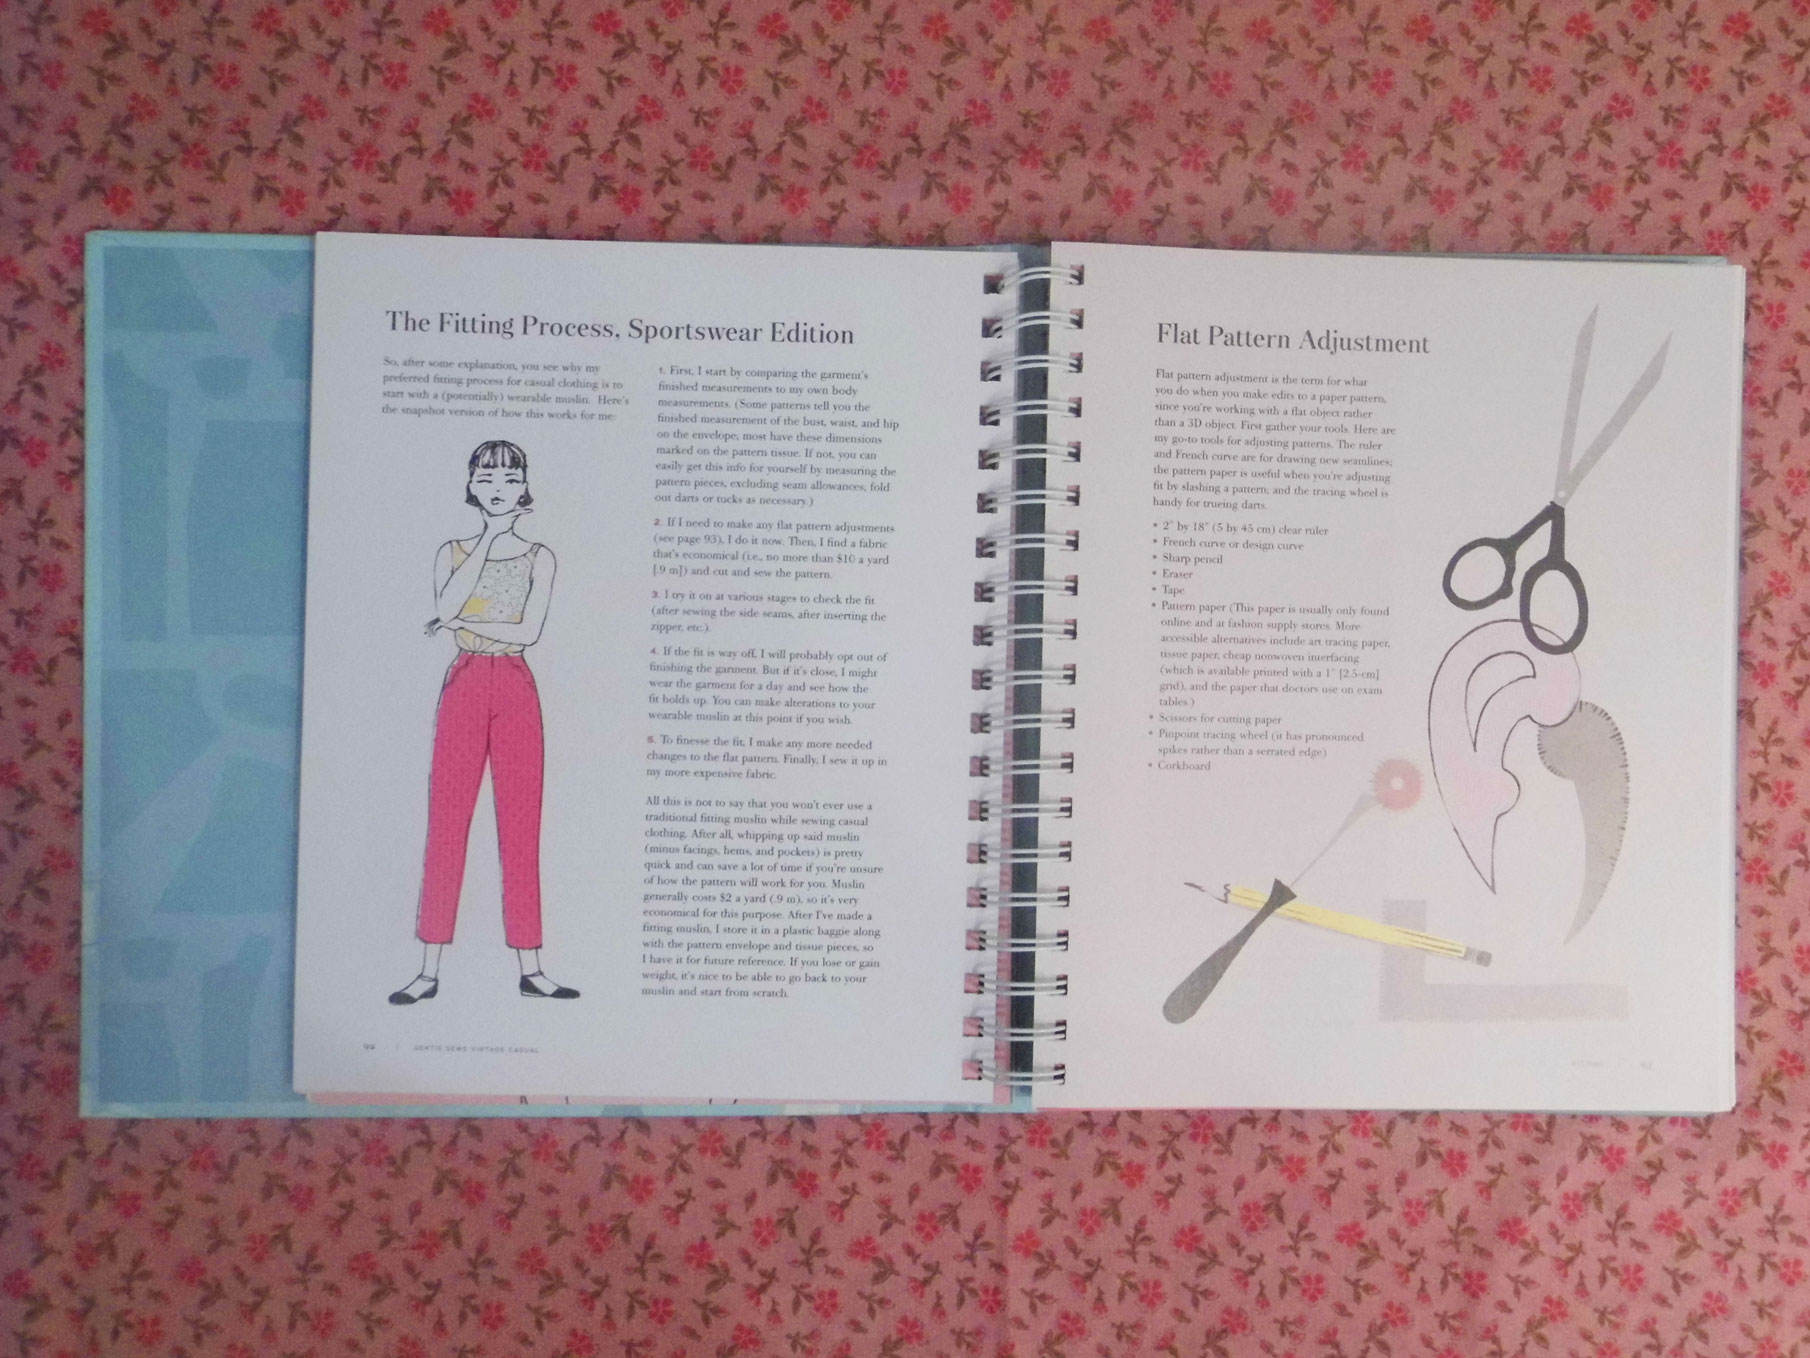 gertie sews vintage casual a modern guide to sportswear styles of the 1940s and 1950s gerties sewing